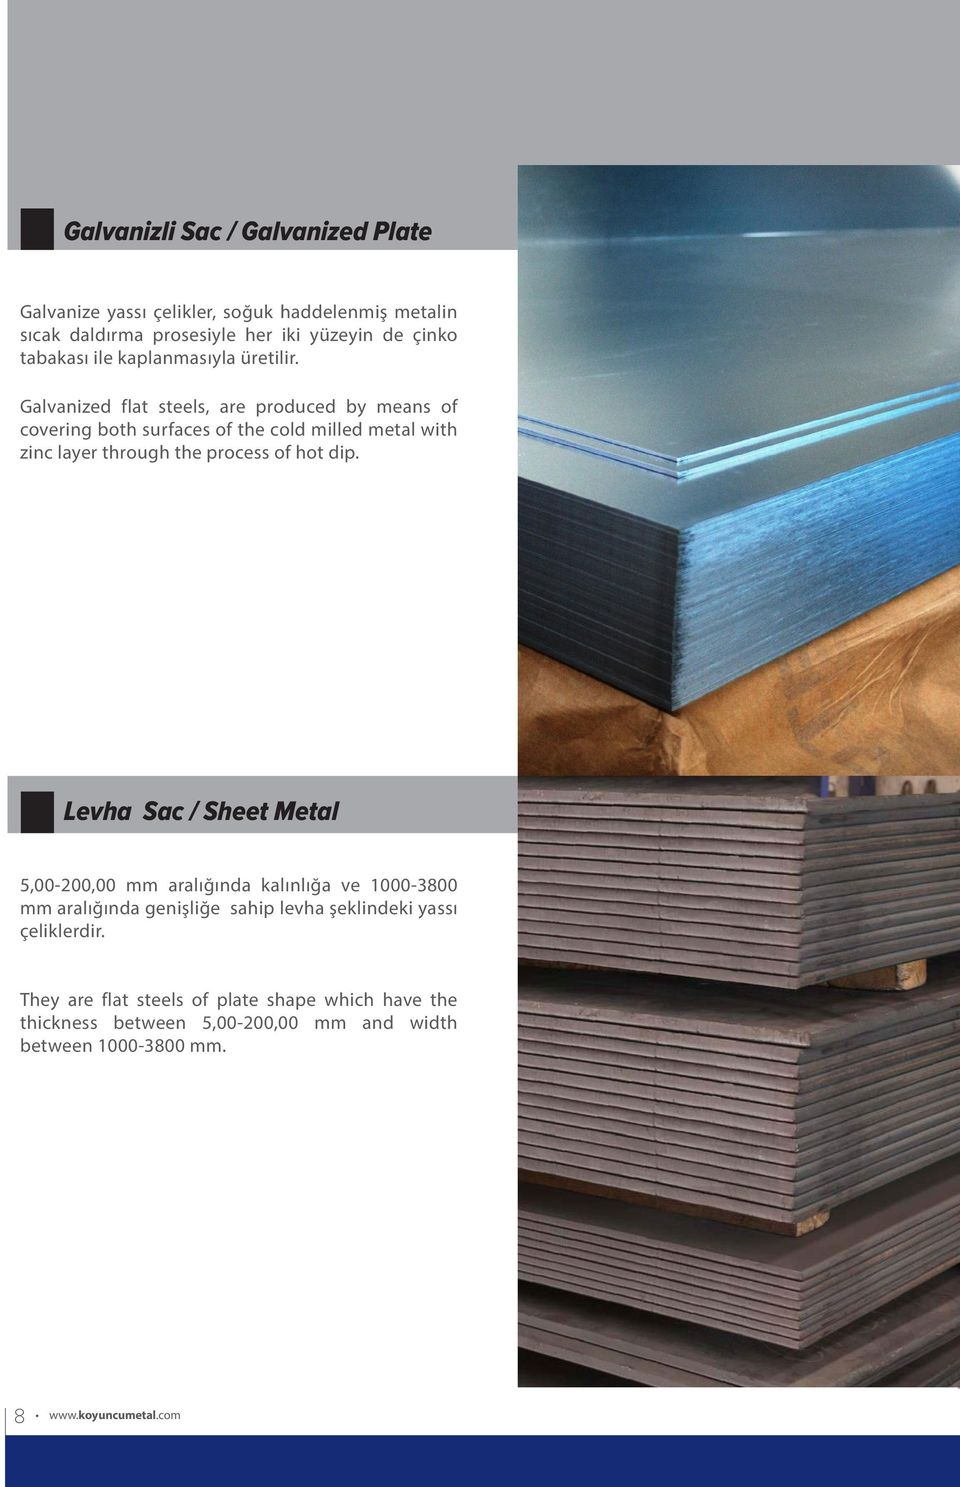 Galvanized flat steels, are produced by means of covering both surfaces of the cold milled metal with zinc layer through the process of hot dip.